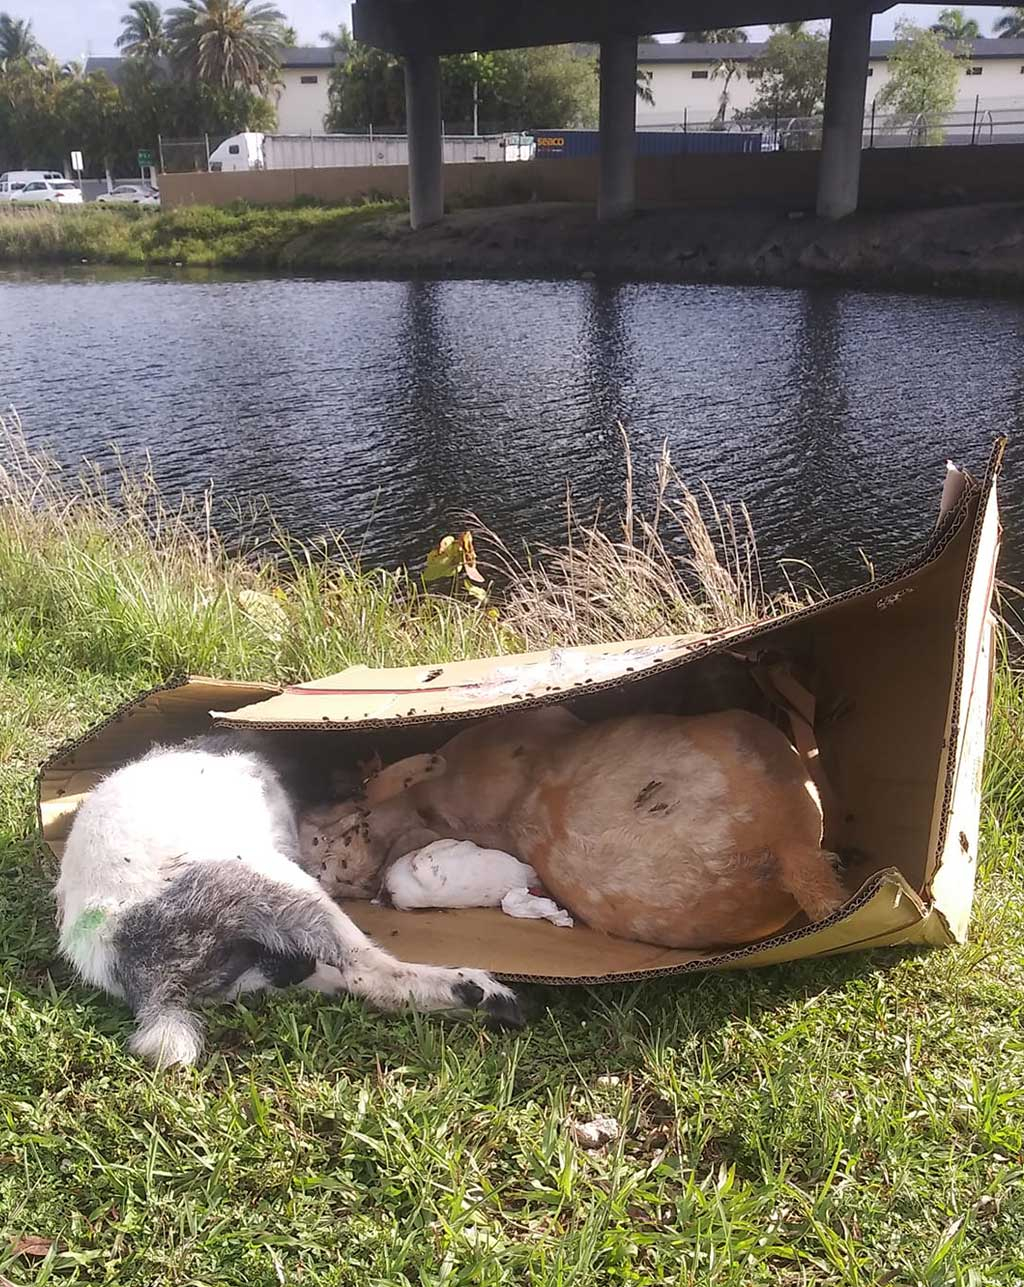 Photo of dead animals posted by Ralph Nuñez via the Miami Springs Community Facebook Group